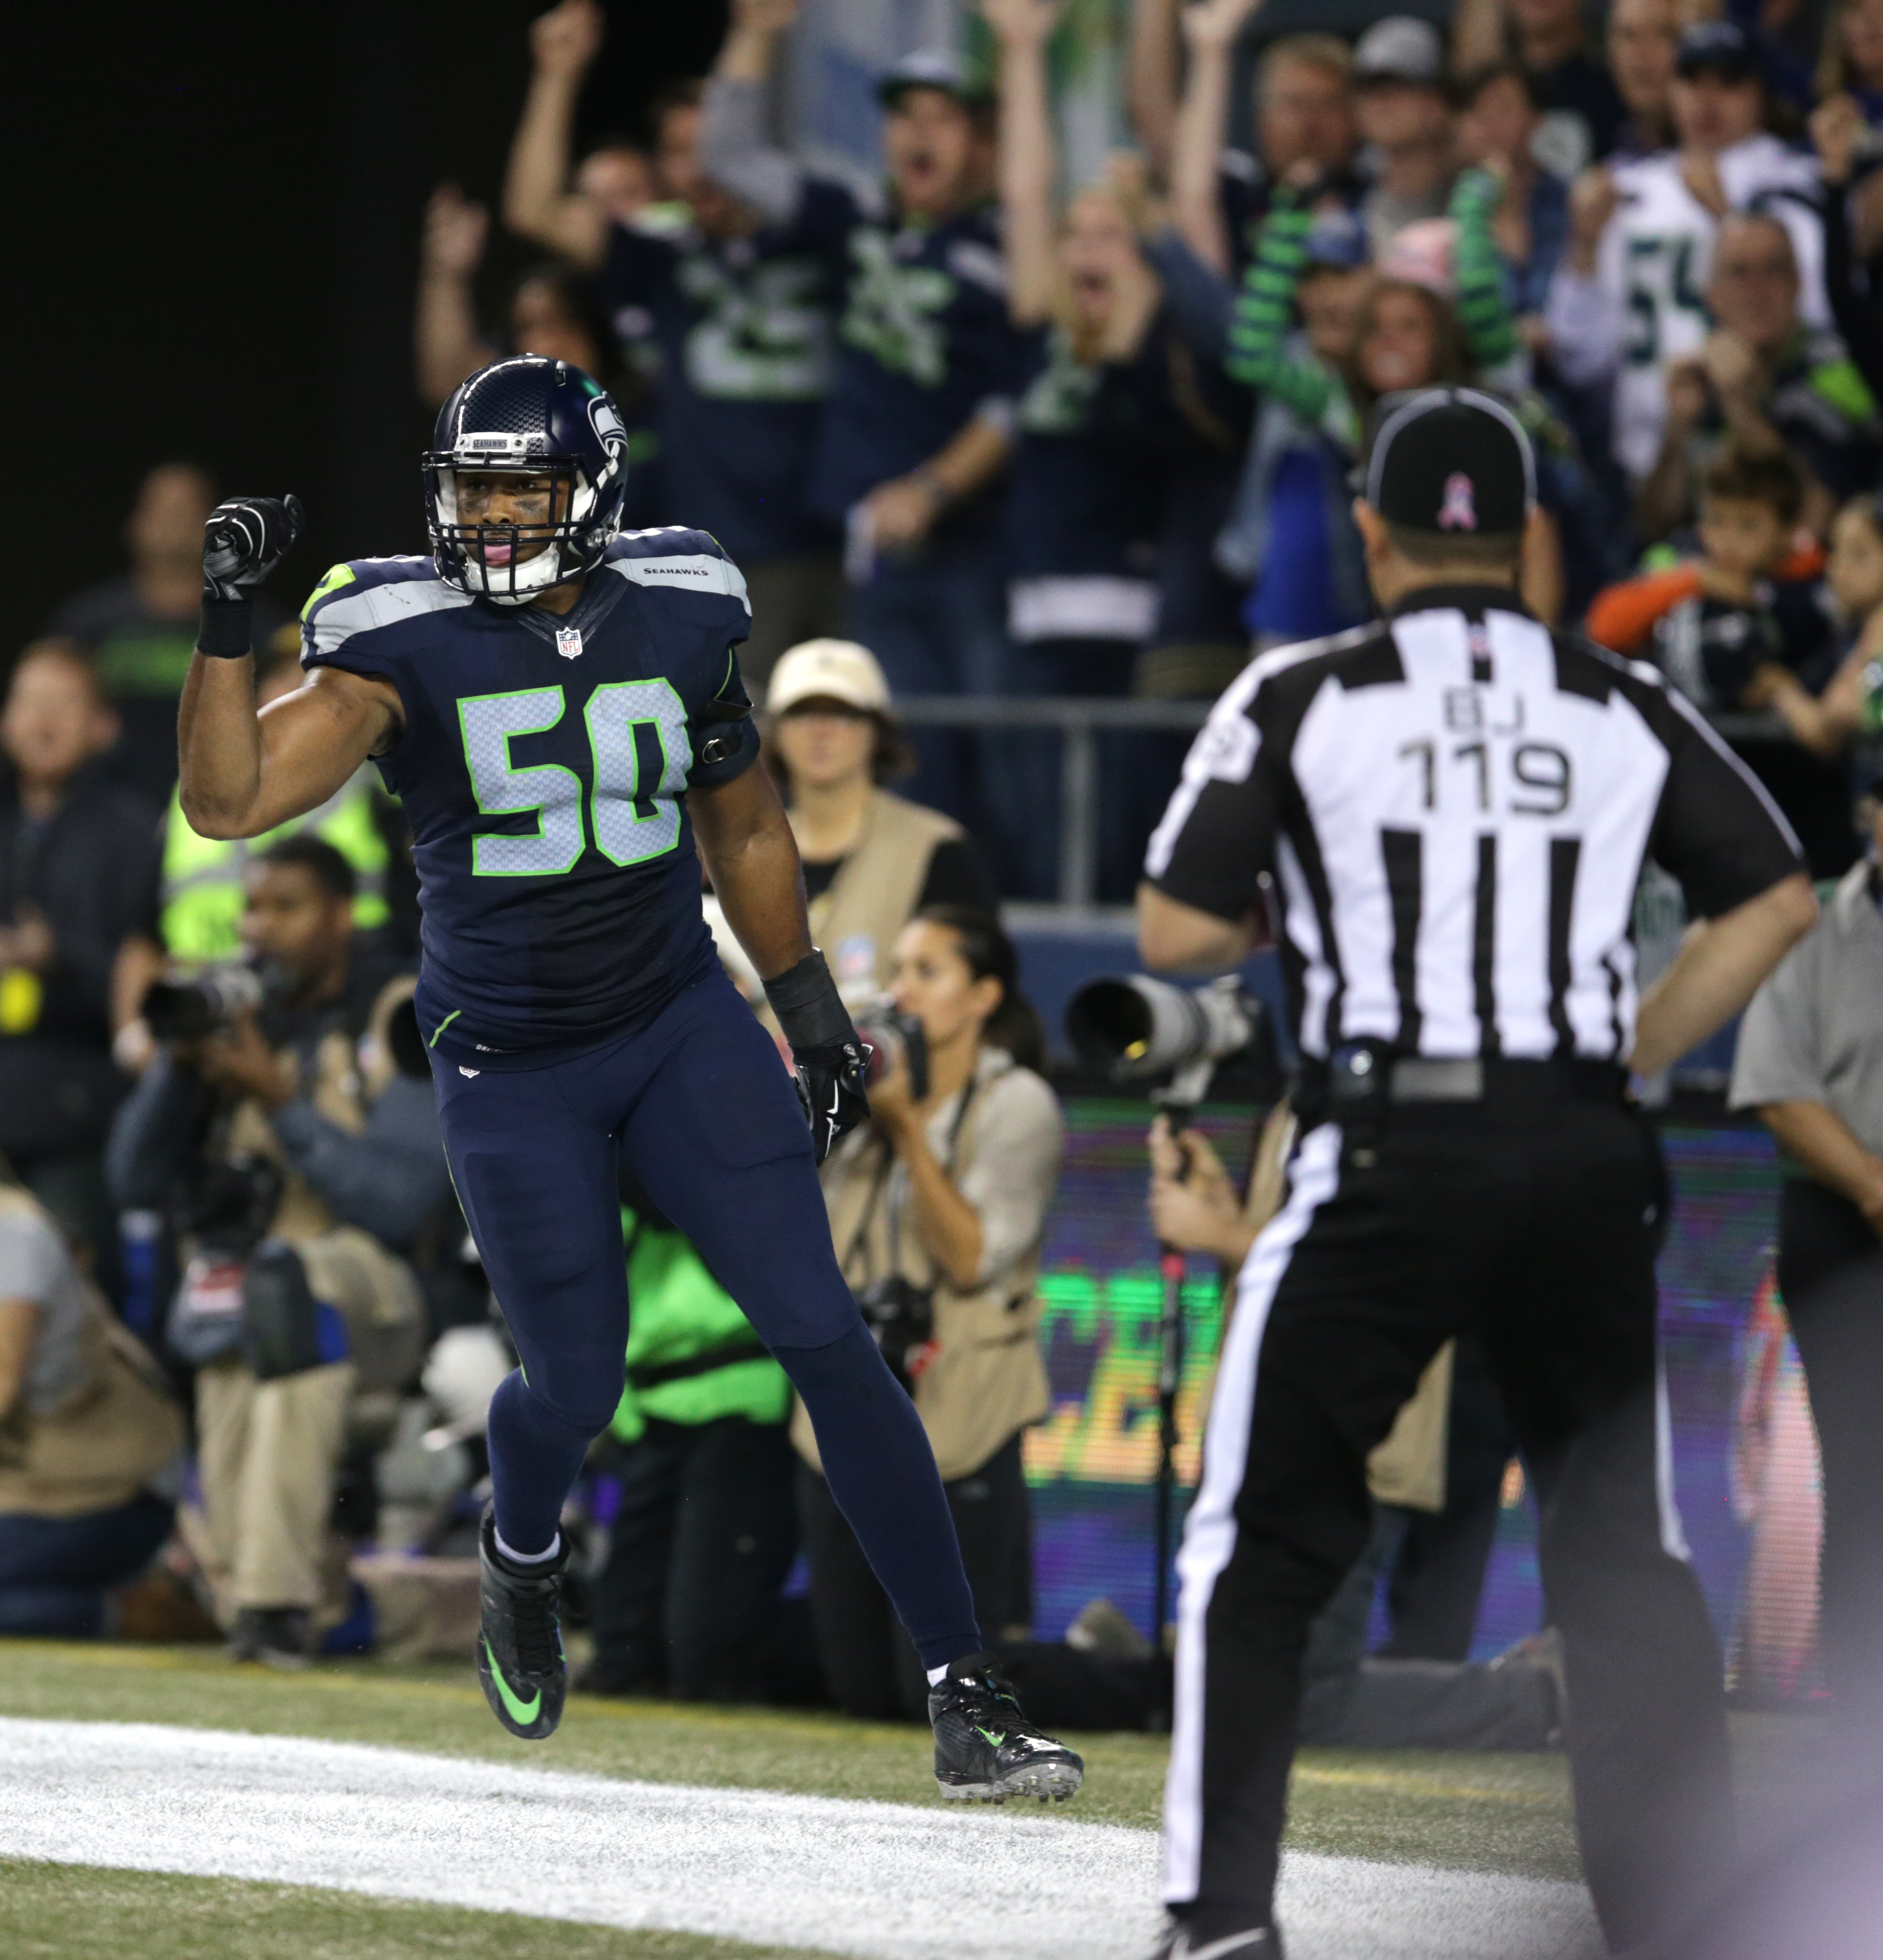 Seattle Seahawks outside linebacker K.J. Wright (50) celebrates after a play late in the fourth quarter of an NFL football game between the Seattle Seahawks and the Detroit Lions that was ruled a touchback after Lions wide receiver Calvin Johnson fumbled